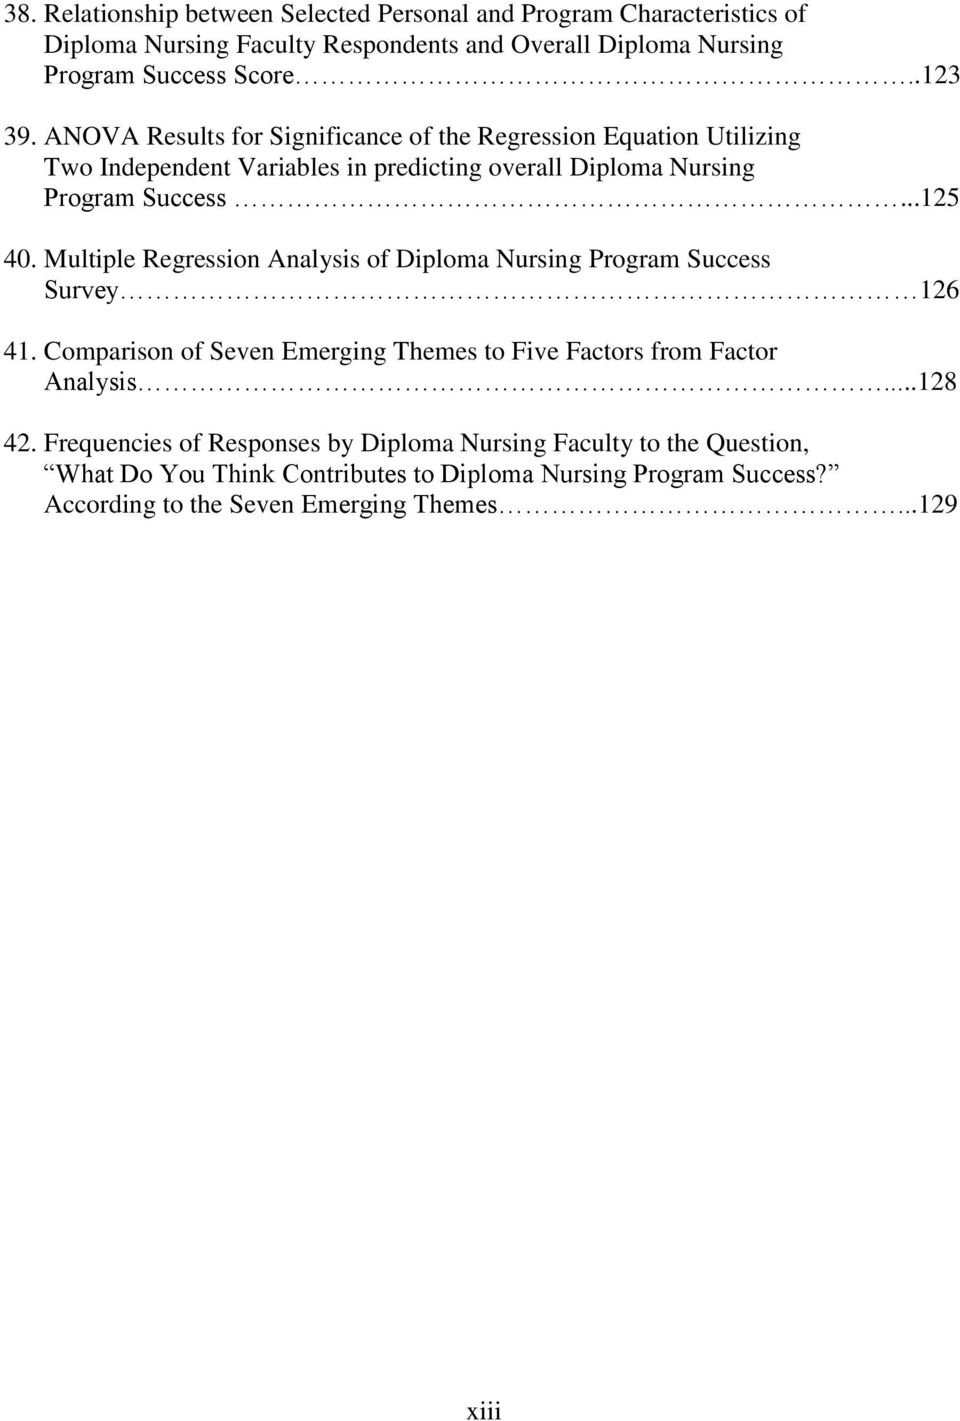 Multiple Regression Analysis of Diploma Nursing Program Success Survey 126 41. Comparison of Seven Emerging Themes to Five Factors from Factor Analysis...128 42.